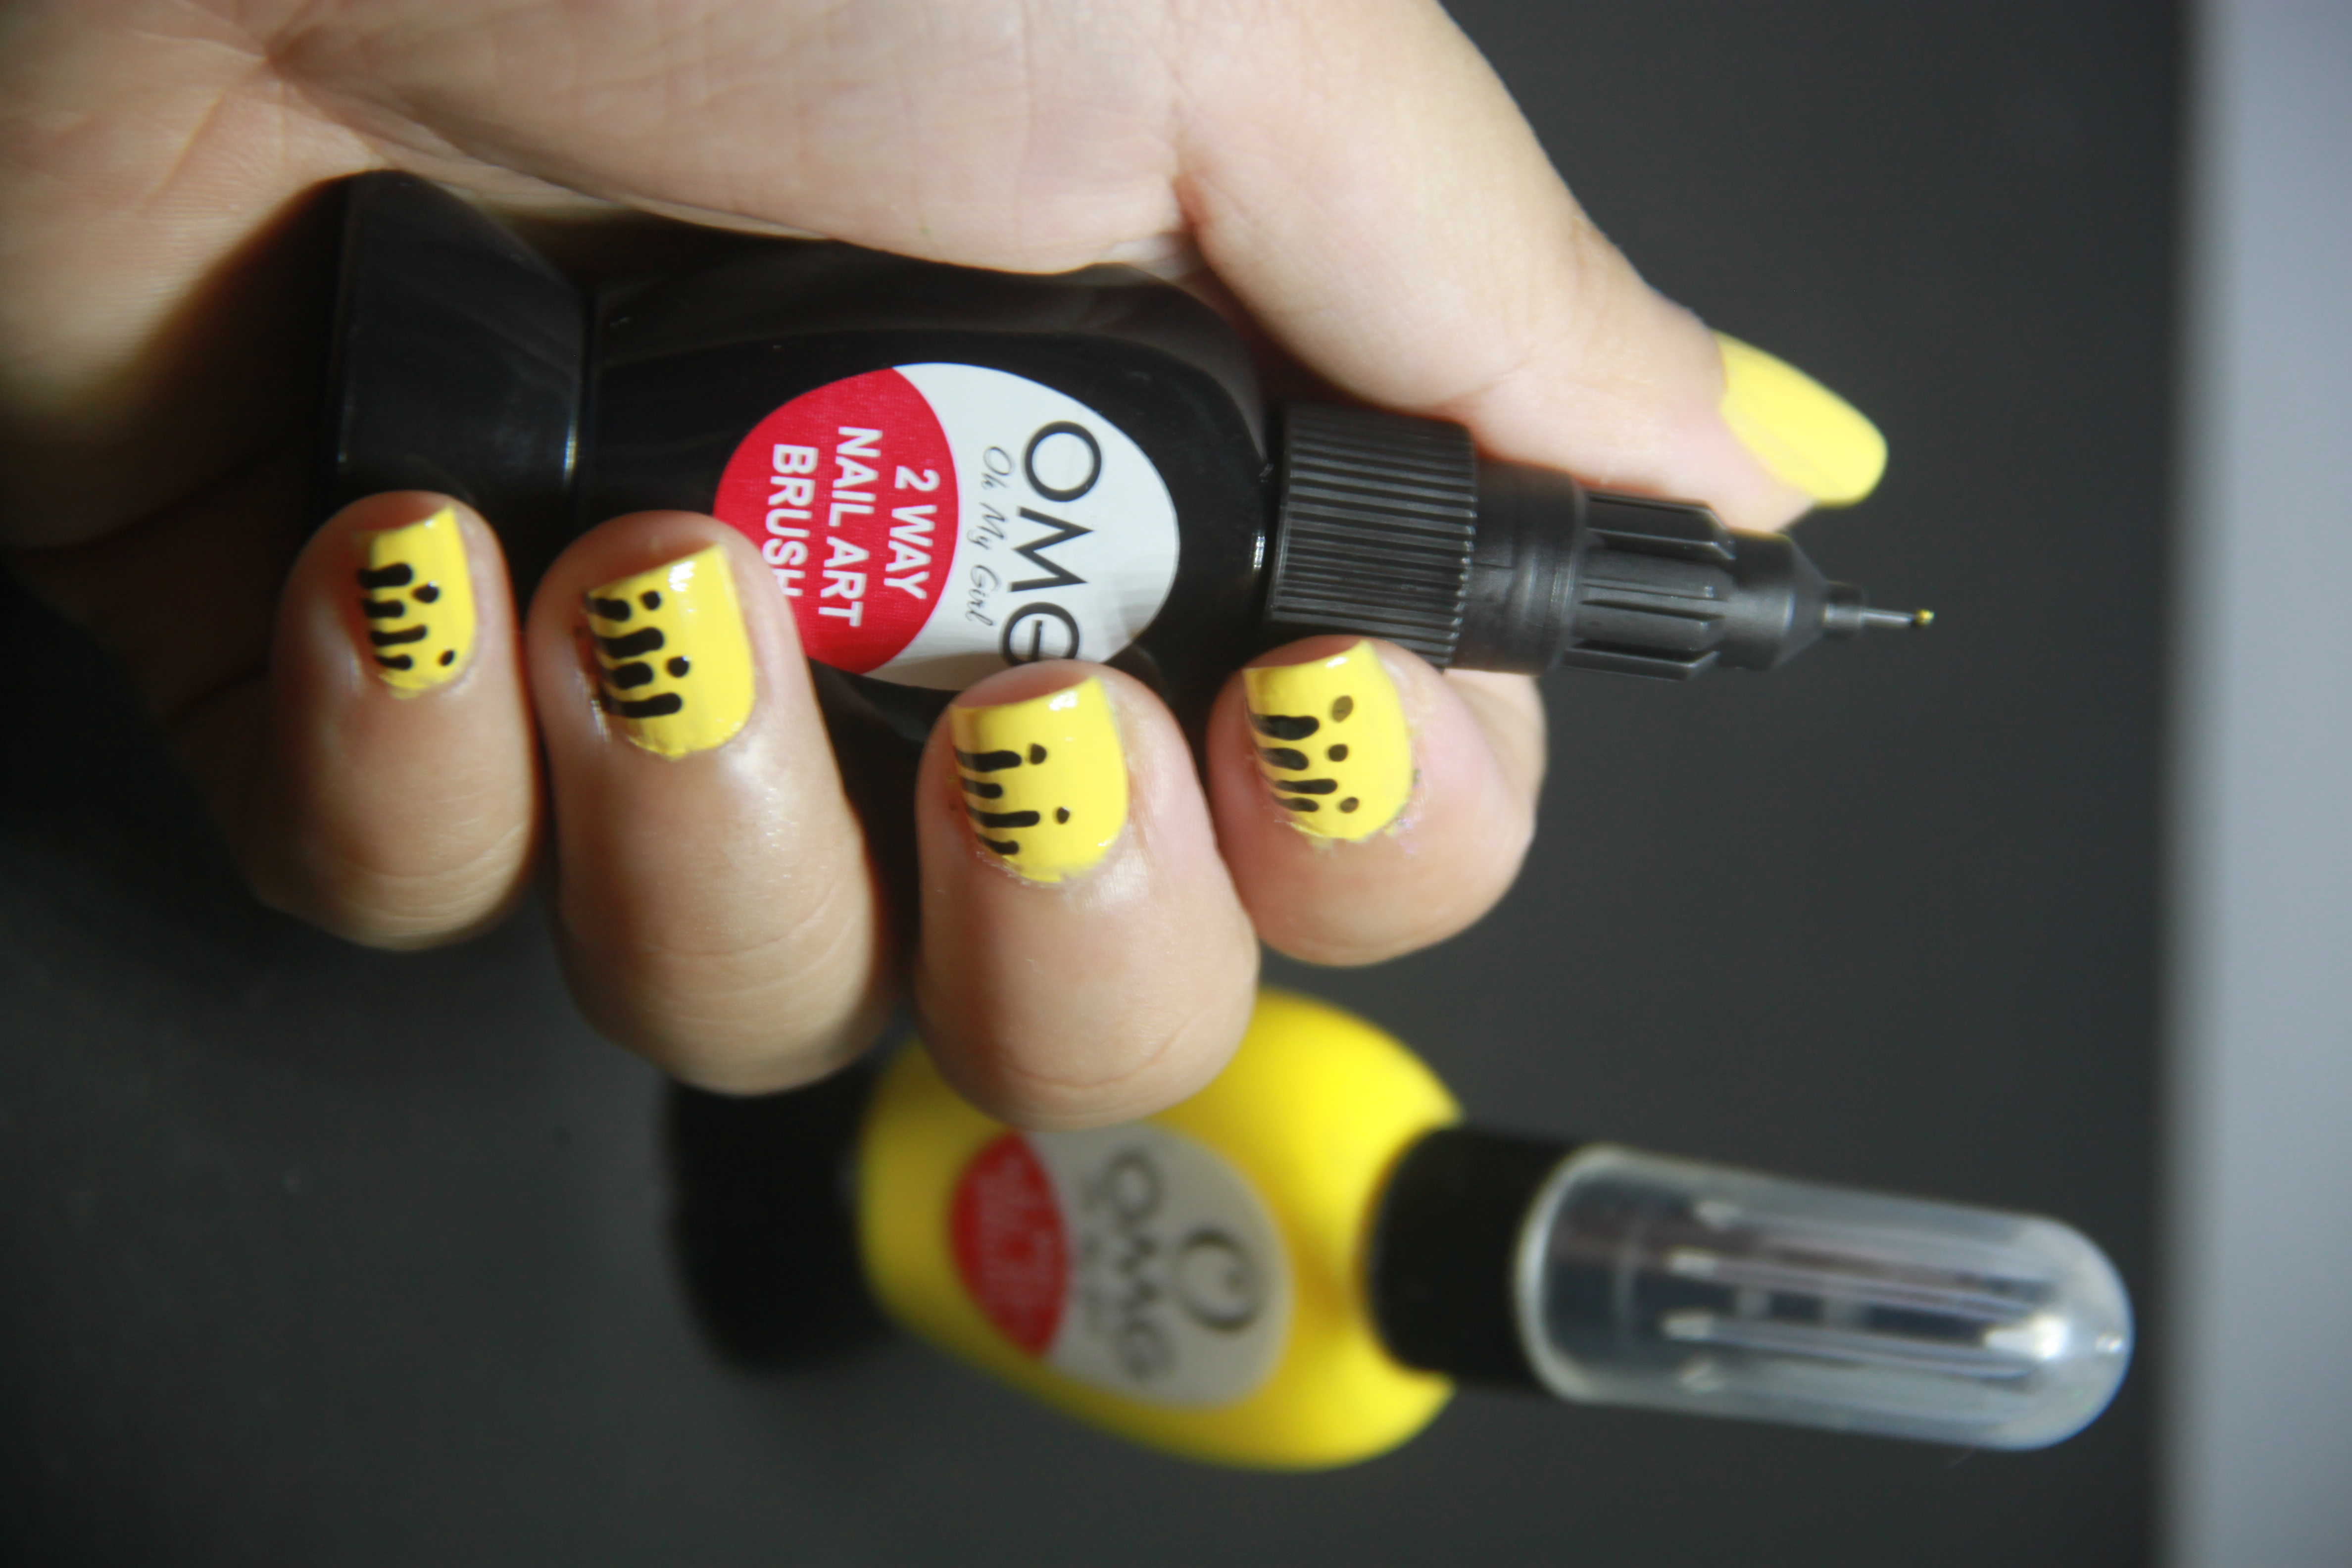 Back to school inspired nail art as easy as 123 any more suggestions on nail inspired designs inspire us like us on our facebook page and share to us your suggestions and feedback prinsesfo Images